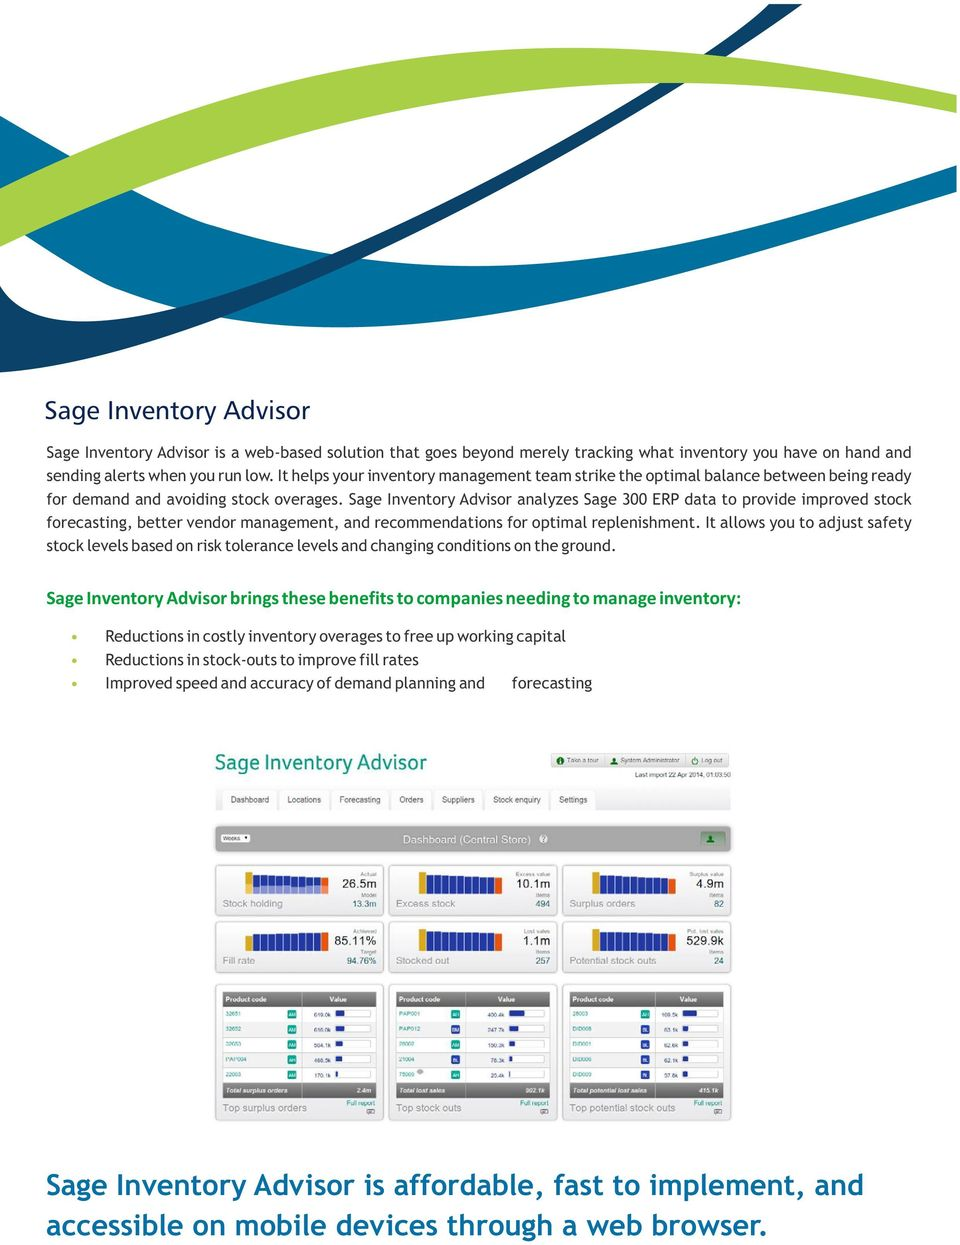 Sage Inventory Advisor analyzes Sage 300 ERP data to provide improved stock forecasting, better vendor management, and recommendations for optimal replenishment.